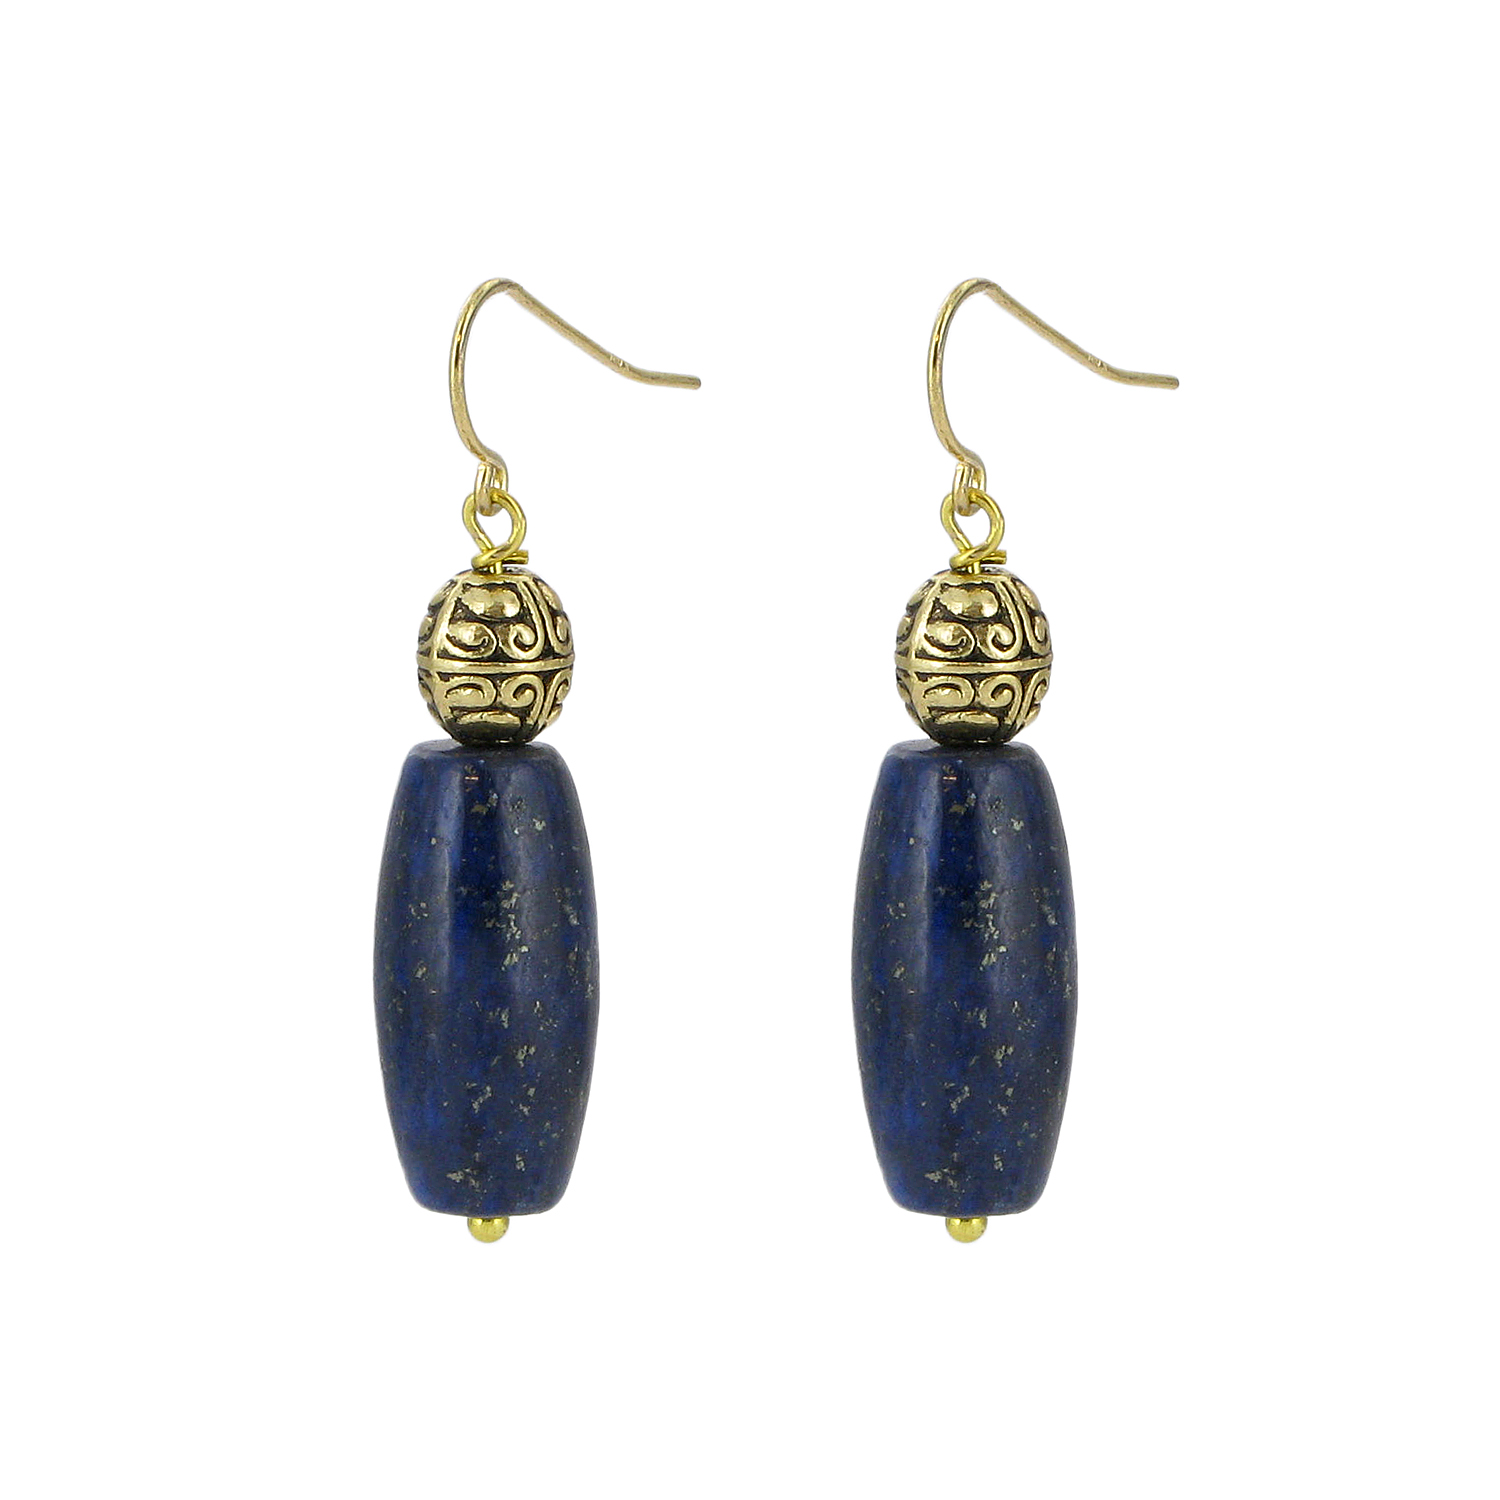 Lapis lazuli and brass drop earrings